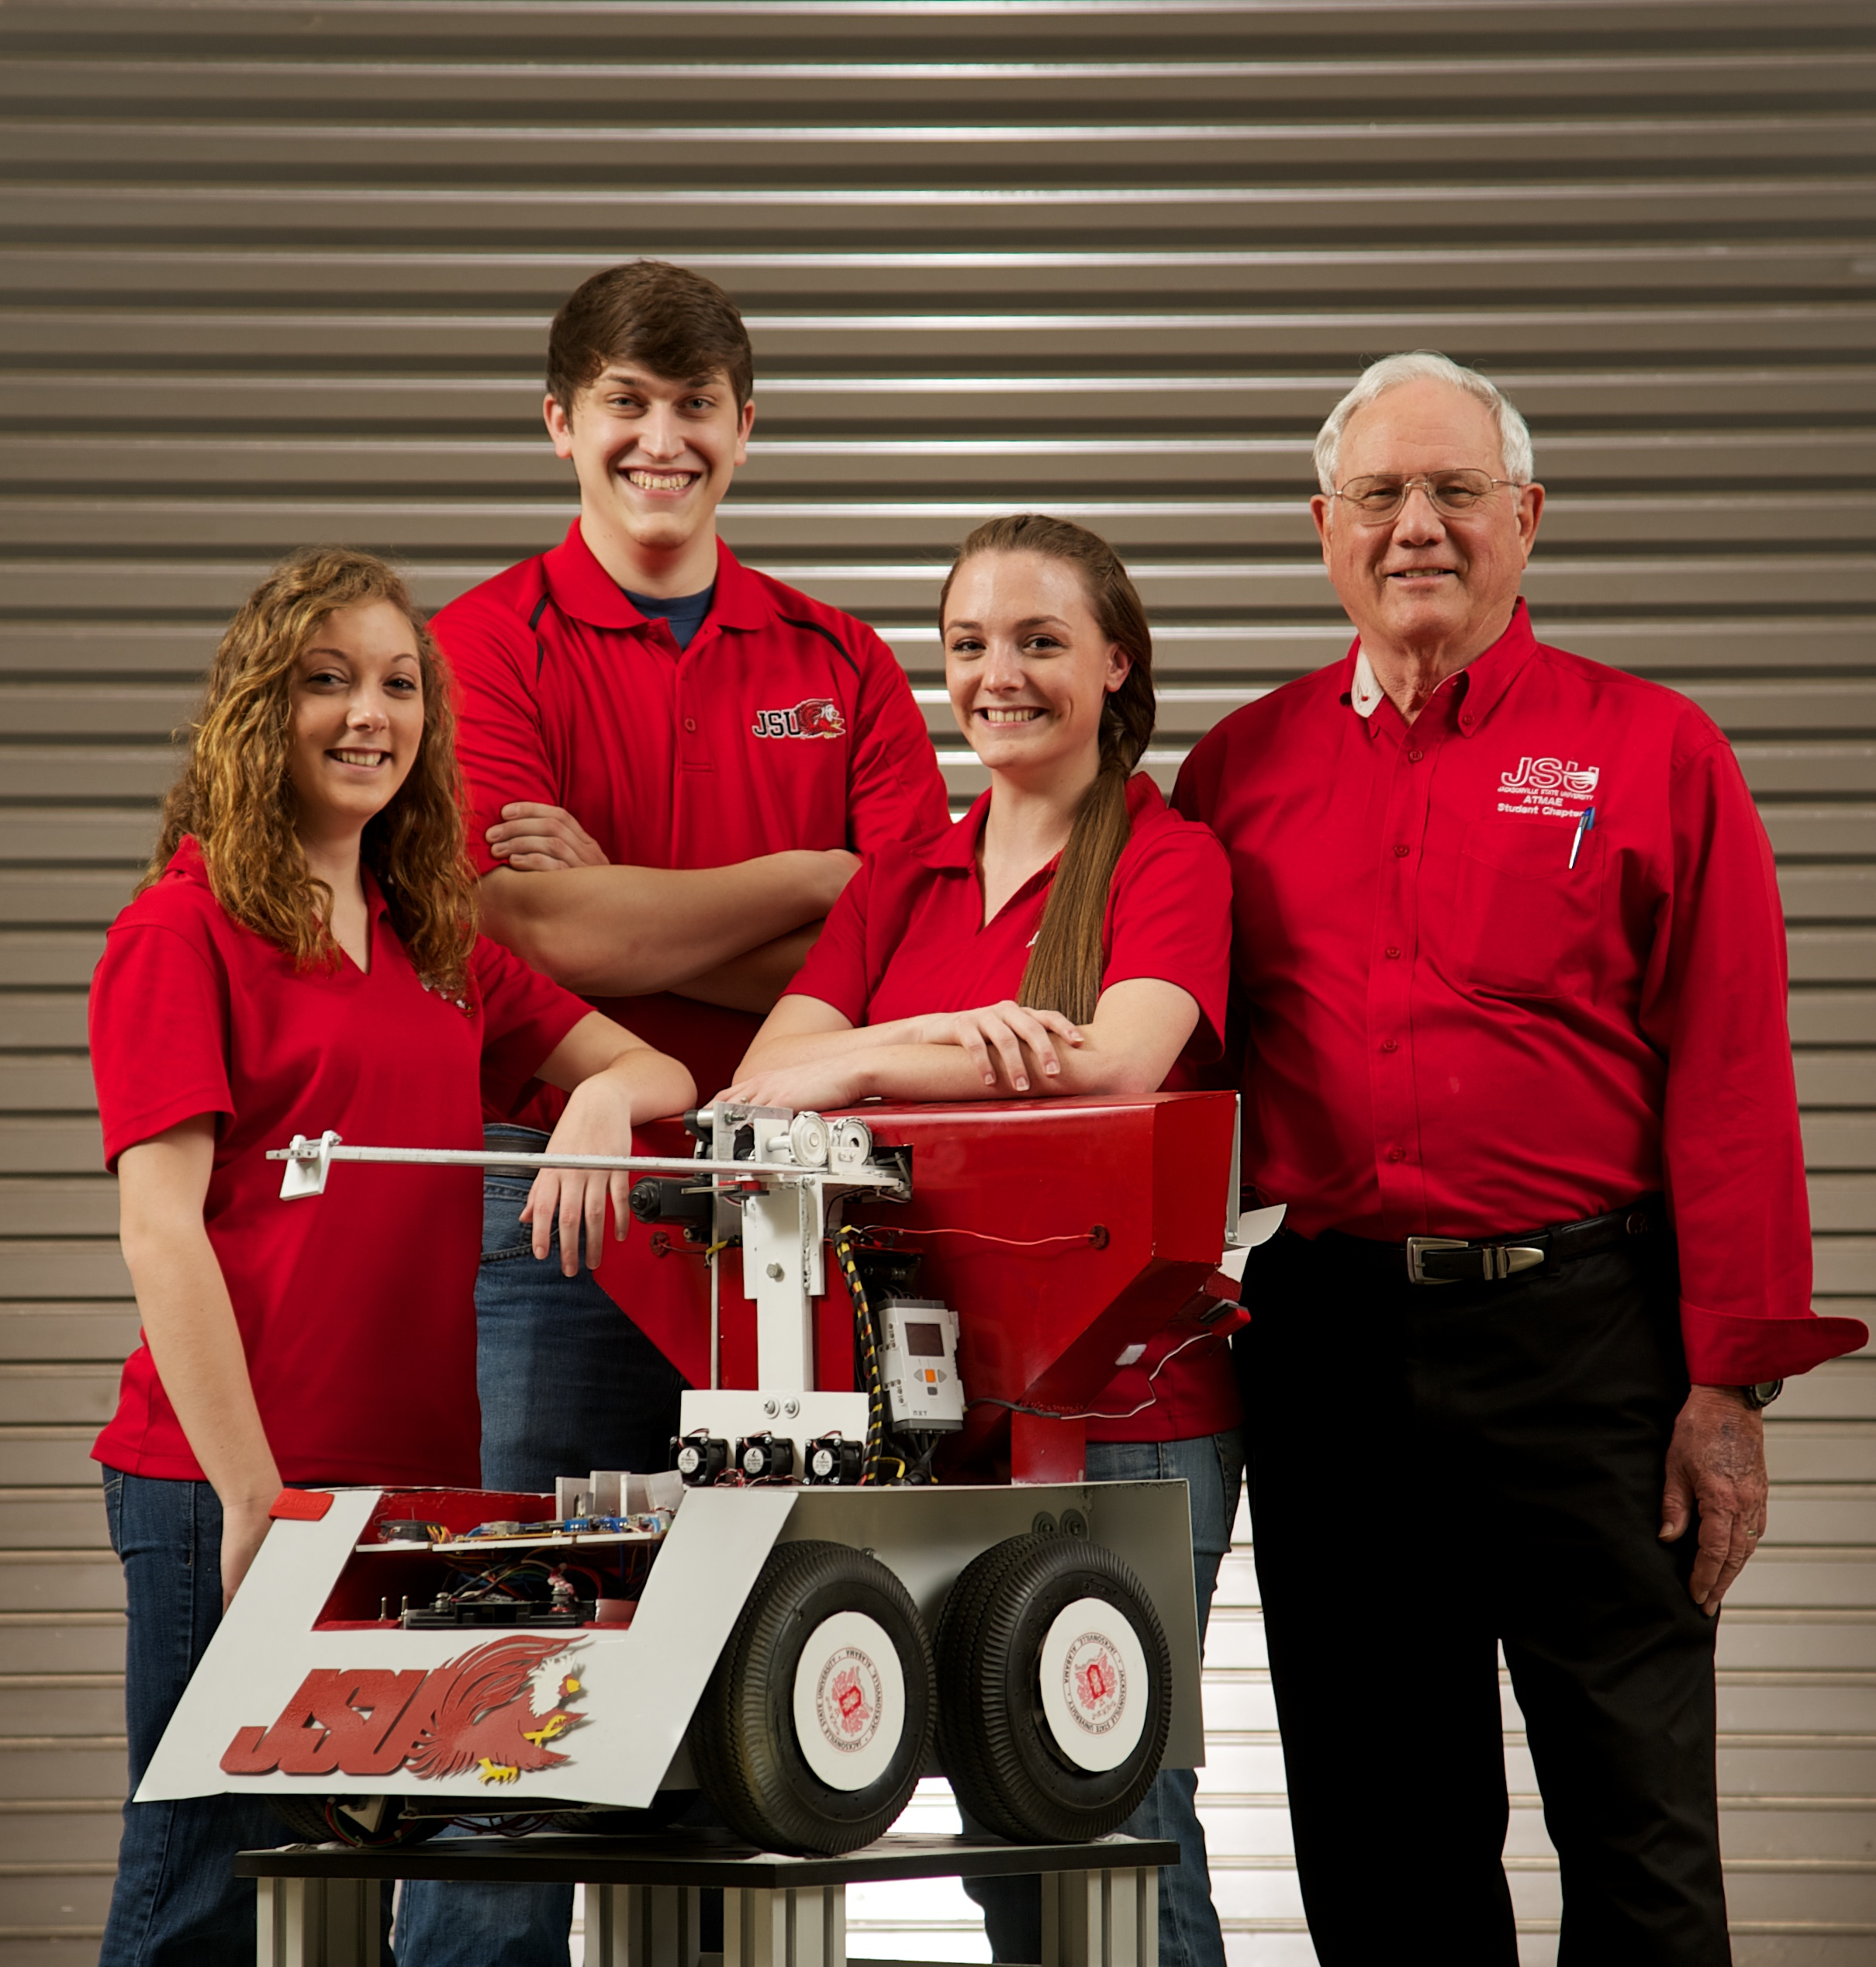 Members of the Jacksonville State University robotics team that won the President's Cup in the ATMAE competition 2 years ago are shown with their robot.  From left are, Tina Civitello, Ben Ledbetter, Jessica Civitello and instructor Phillip Dean.